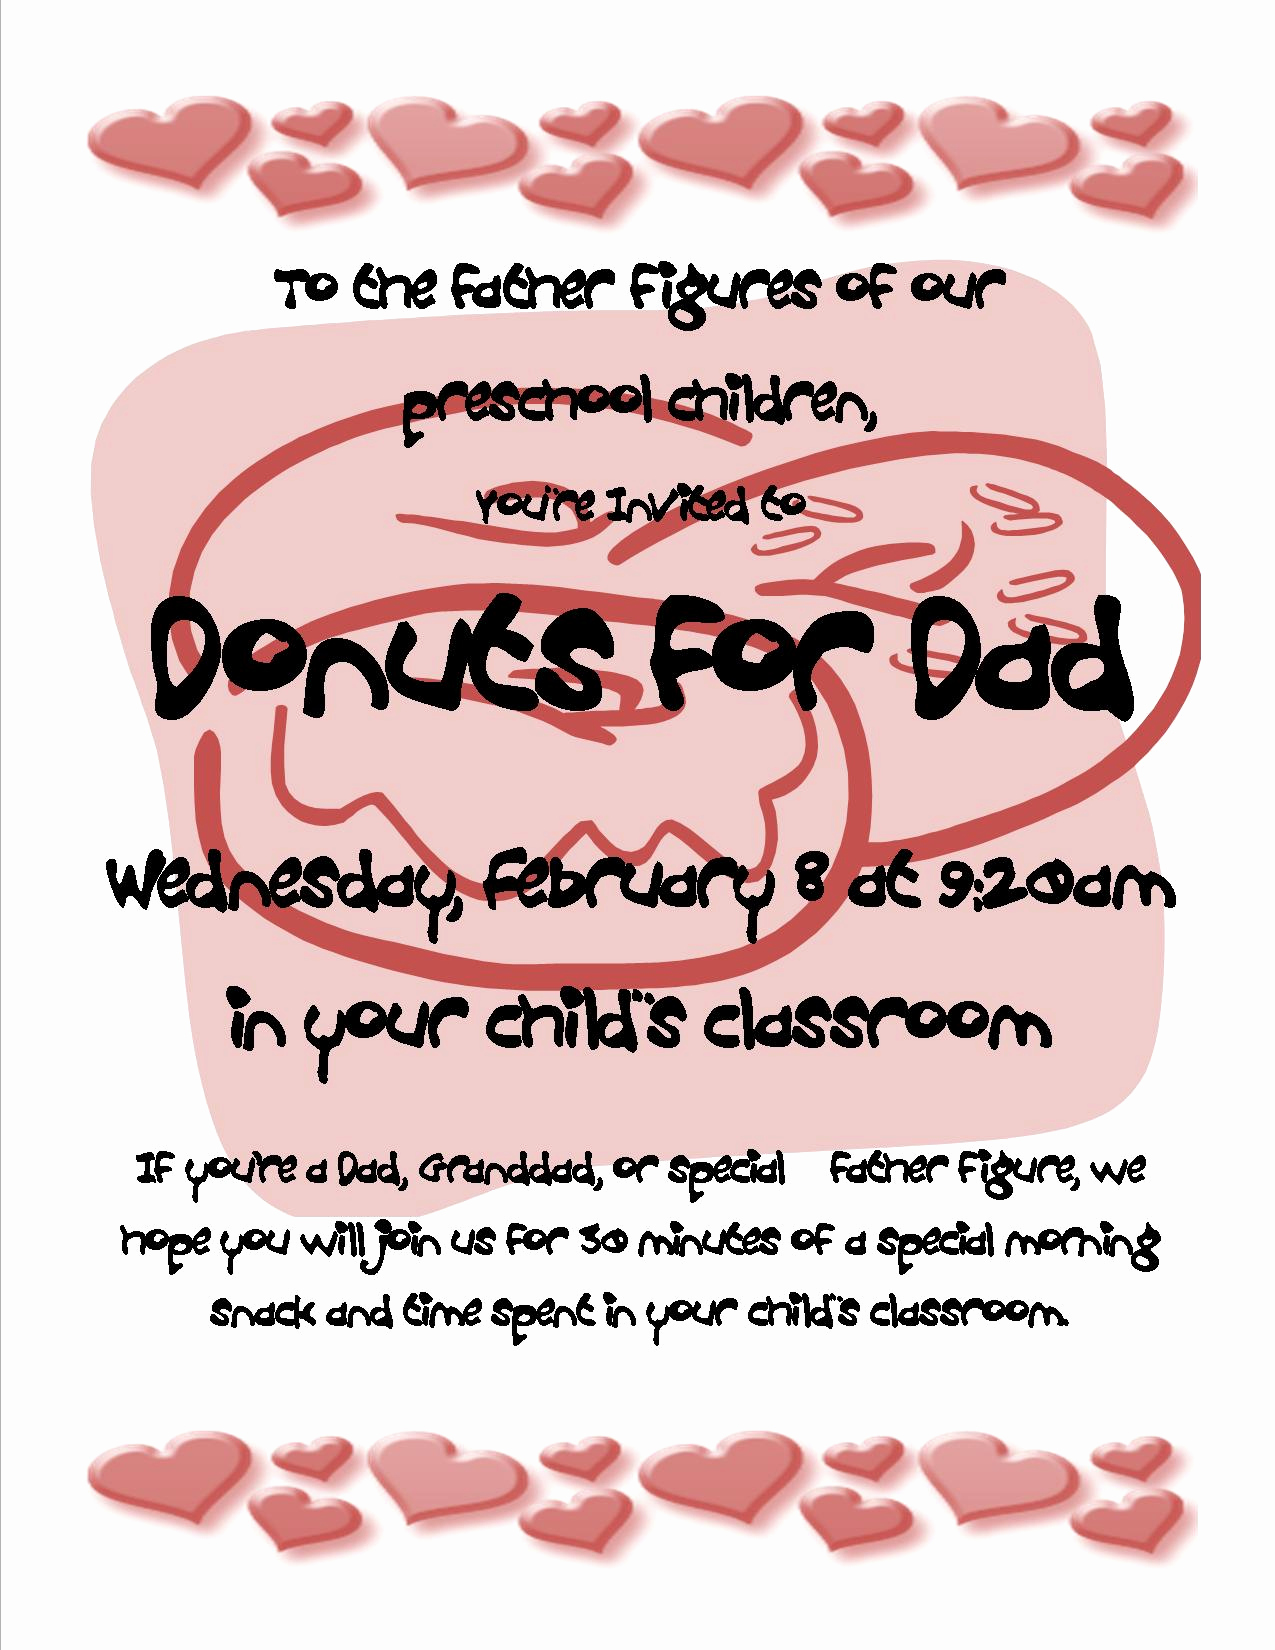 Donuts with Dad Invitation Awesome February 2012